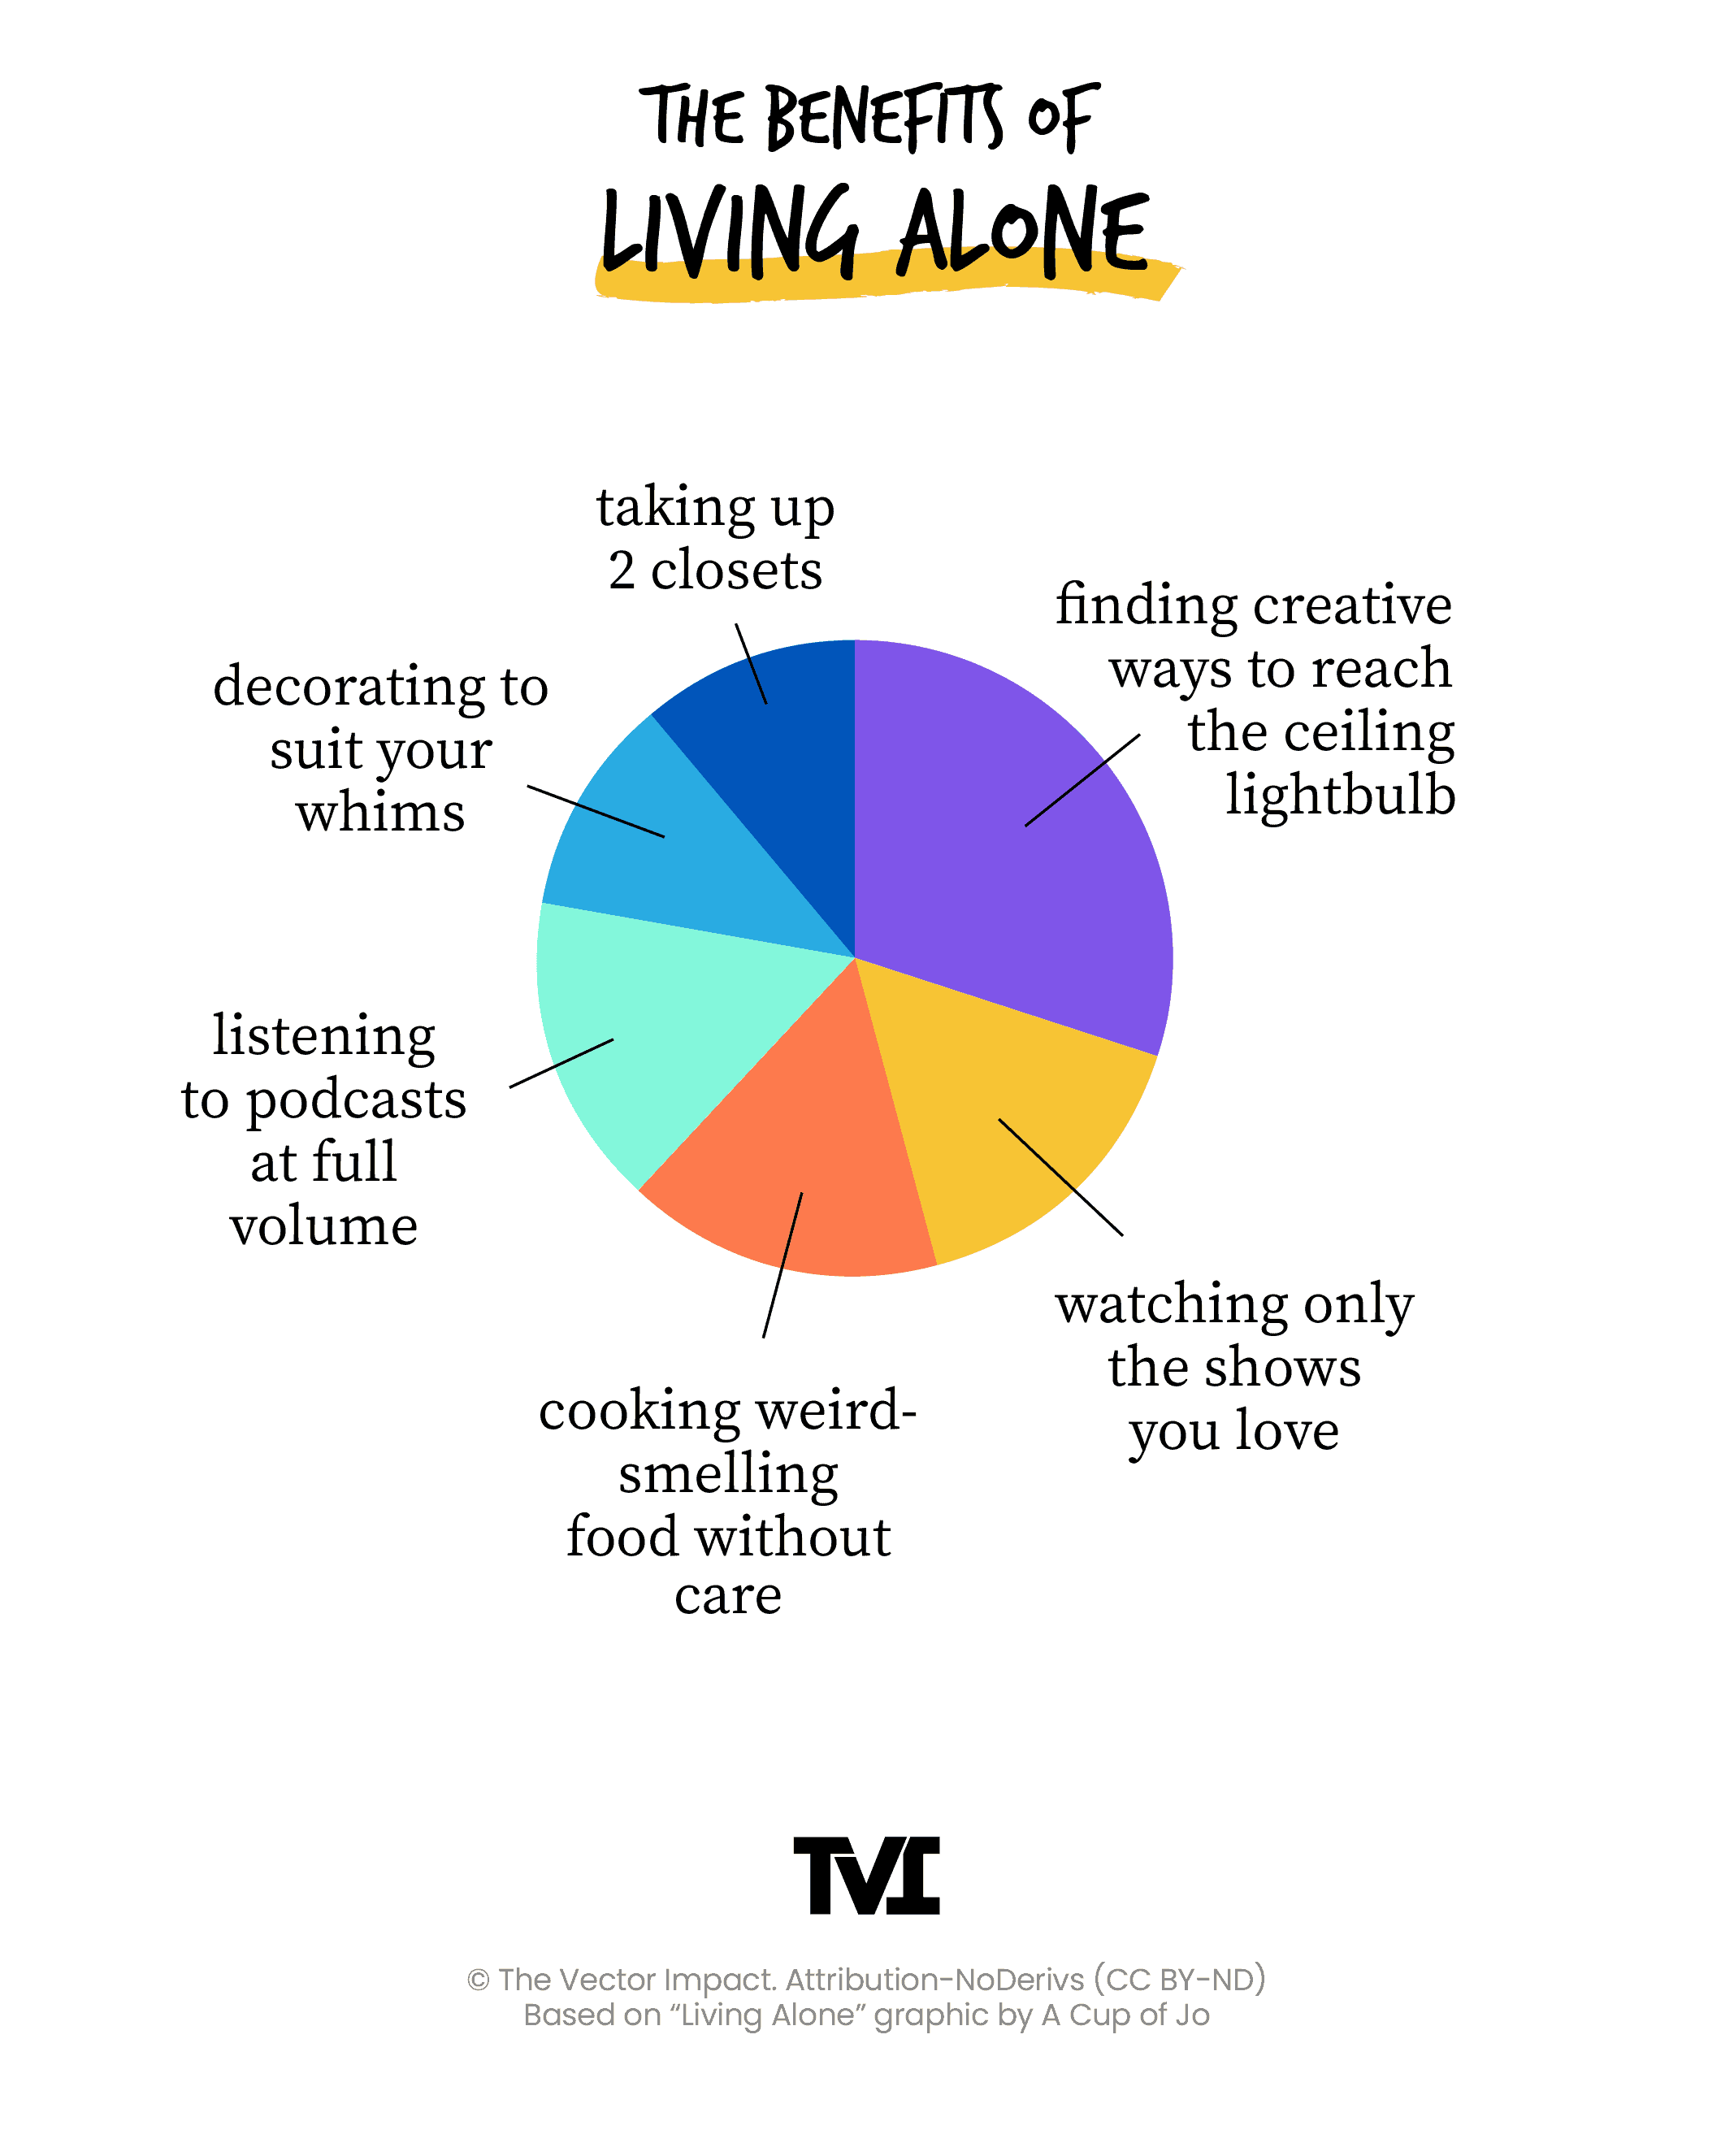 pie chart showing the benefits of living alone, such as decorating freedoms, closet space, podcasts at ful volume, cooking weird-smelling food, tv control, getting creative to reach ceiling lightbulb